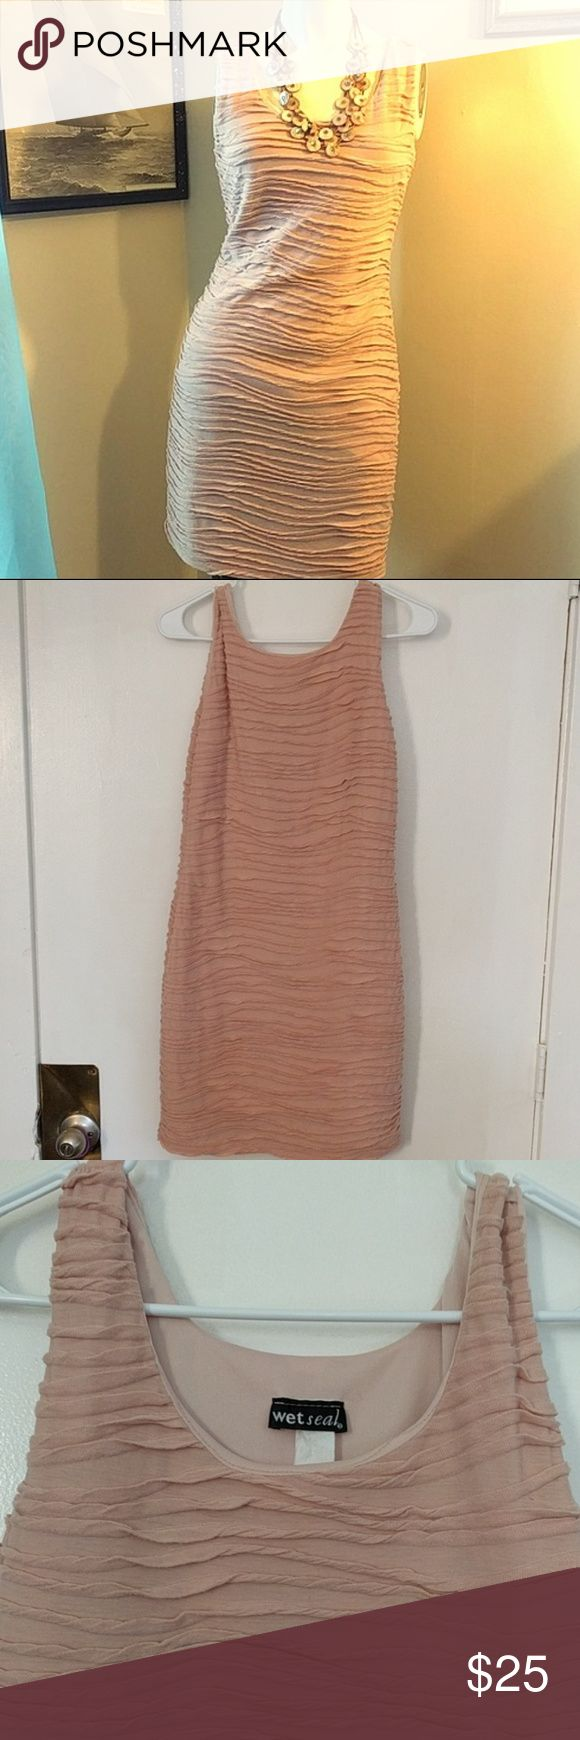 #WetSeal Pink Ruffle Bodycon Dress Really soft Jersey fabric feel wet seal dress, sexy fit. EUC. No size tag, best guess is a medium! Wet Seal Dresses Mini